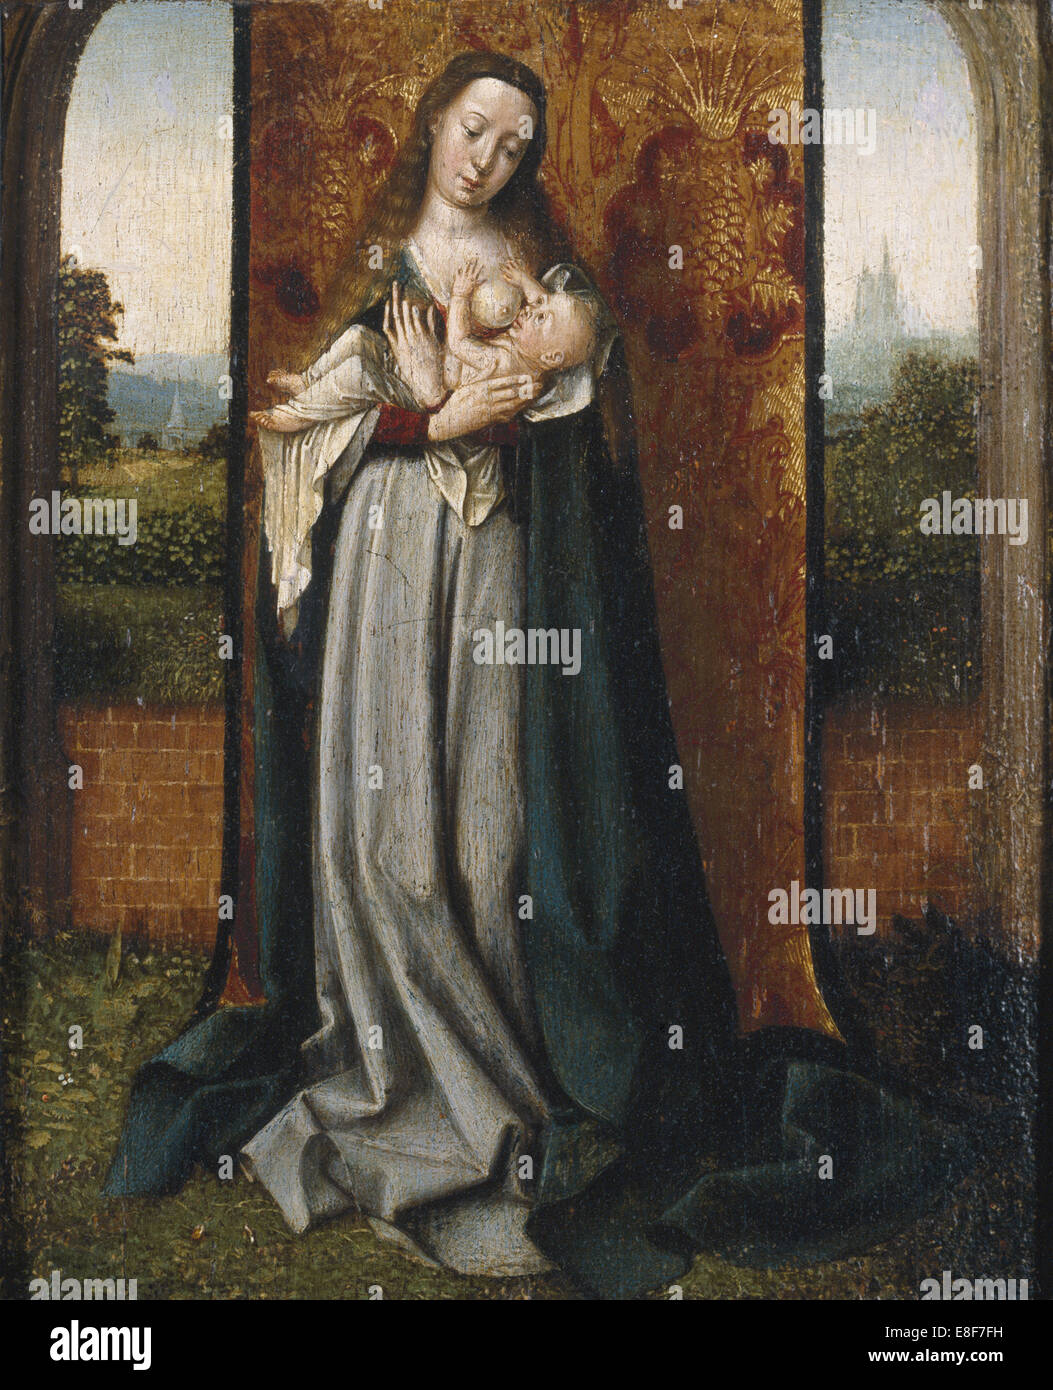 Virgin and child. Artist: Provost (Provoost), Jan (1465-1529) - Stock Image